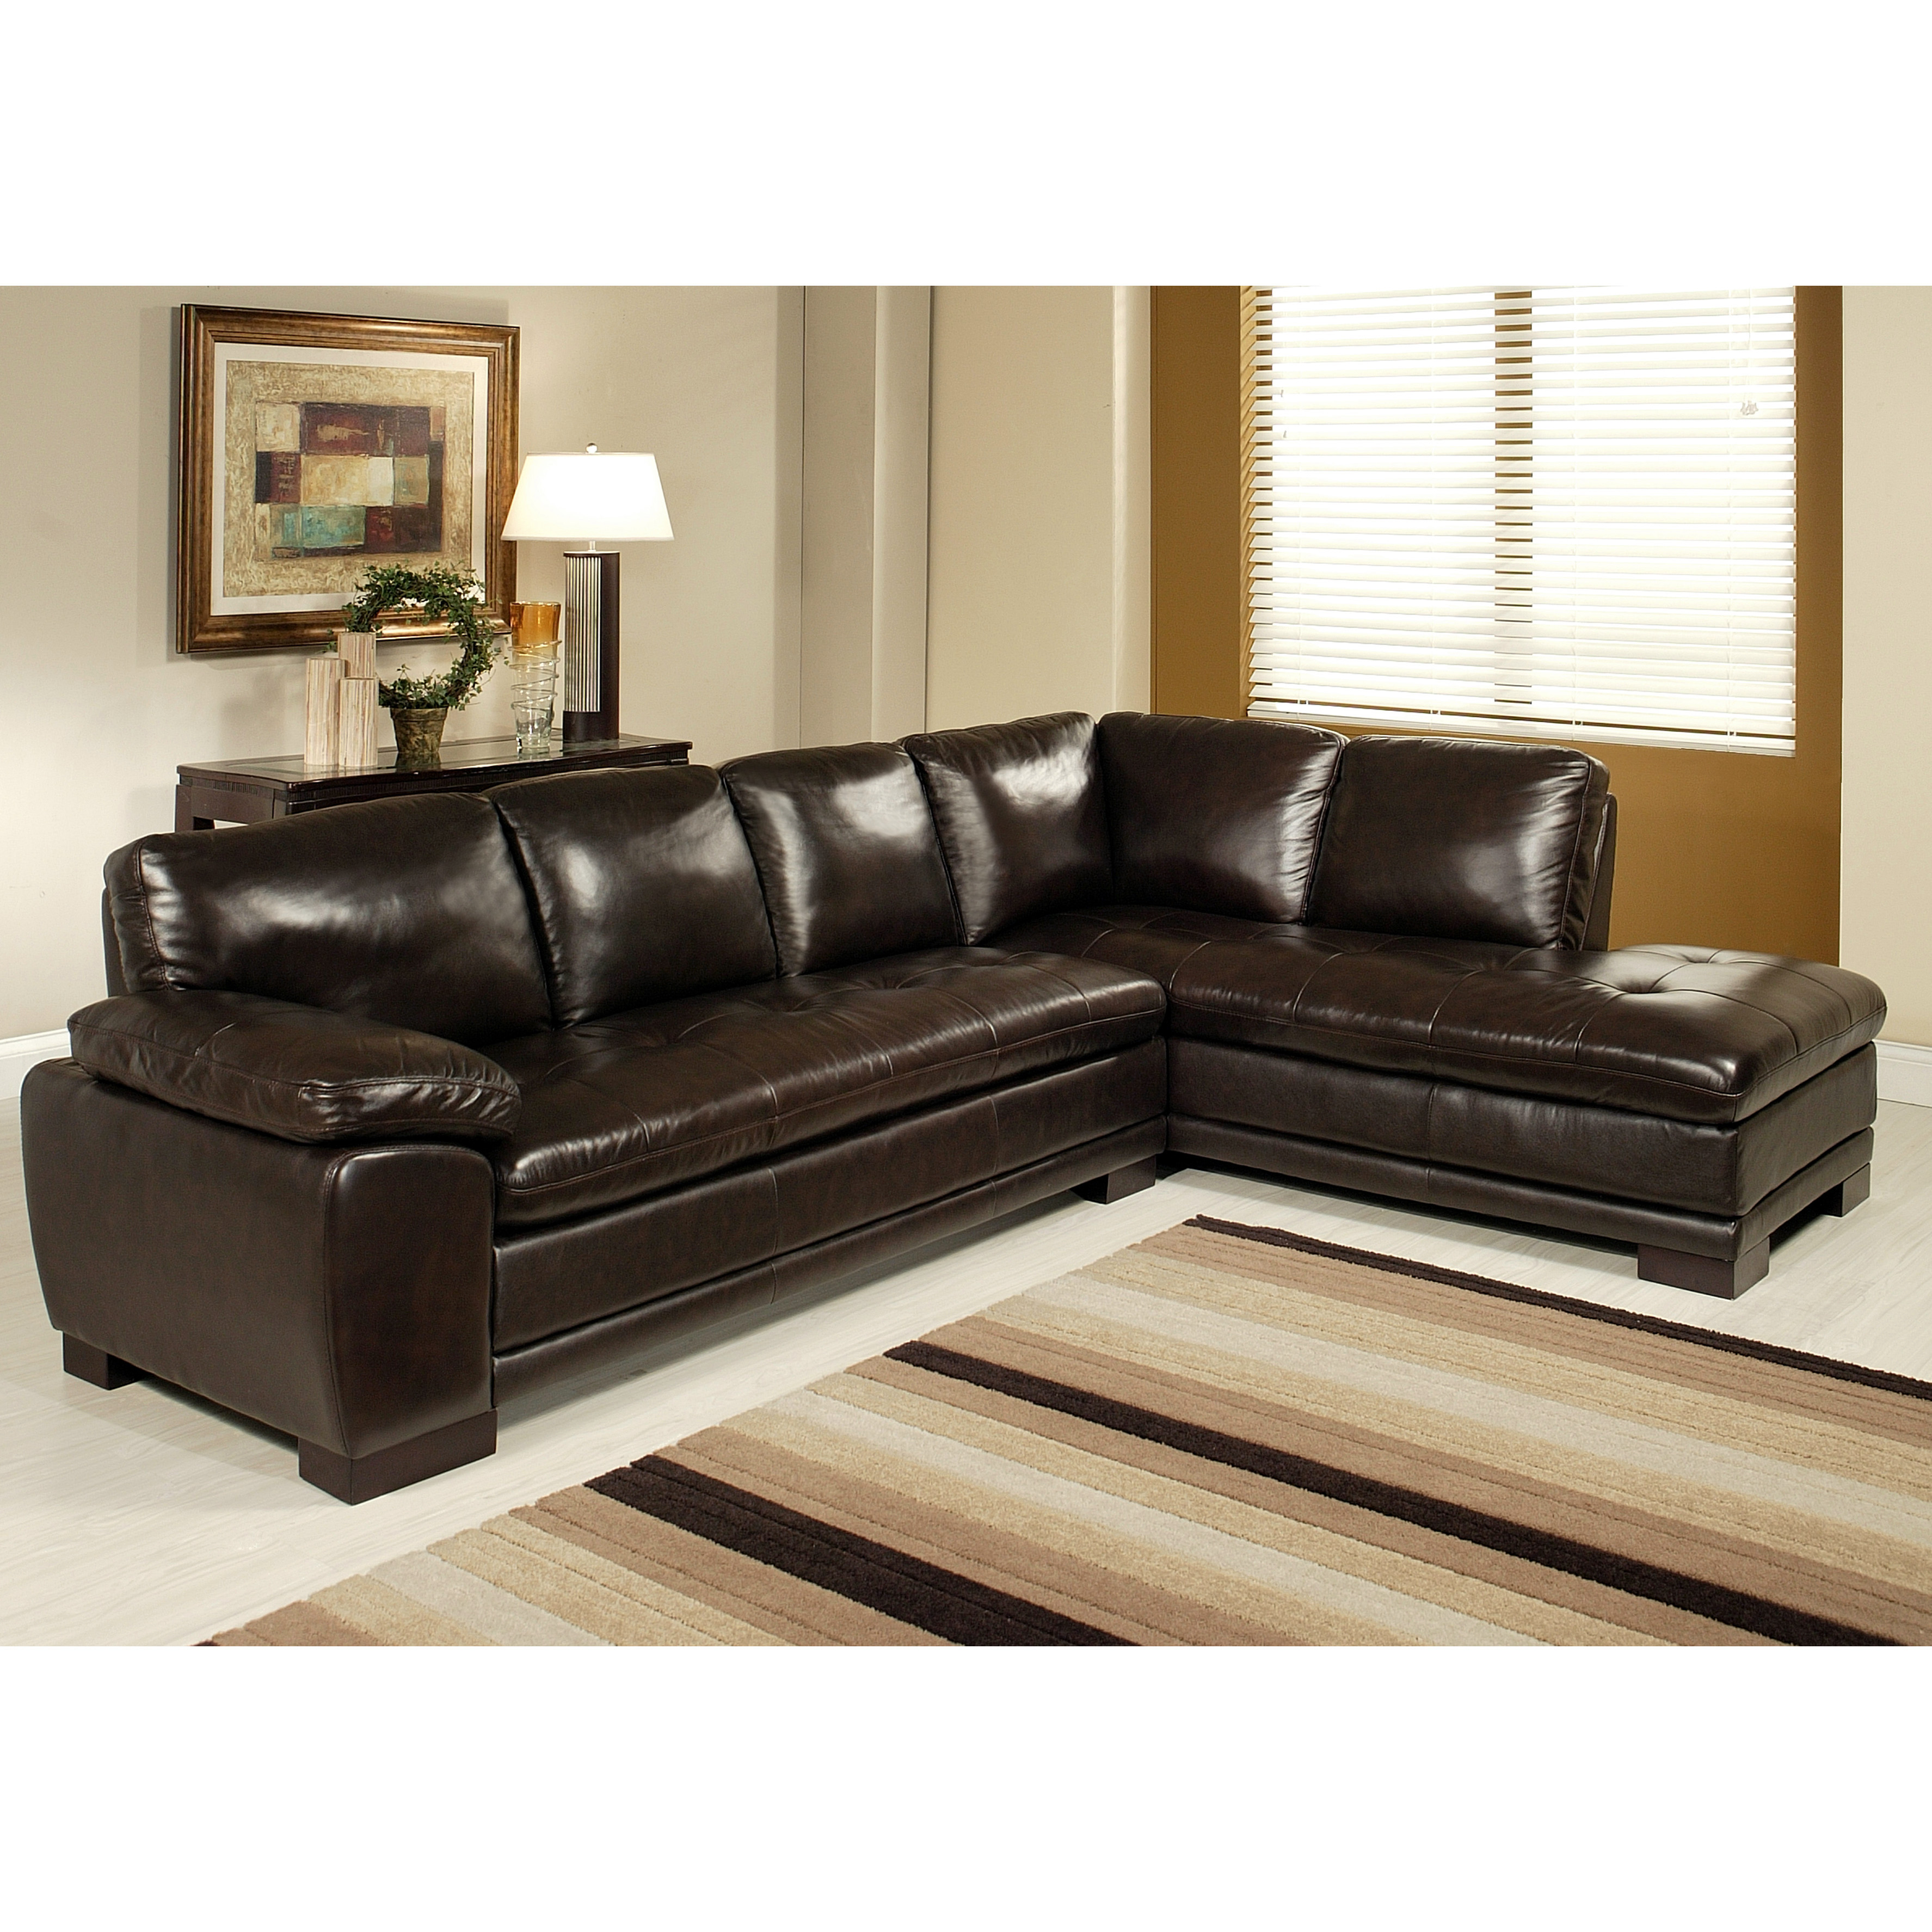 Best ideas about Wayfair Sectional Sofa . Save or Pin Abbyson Living Tivoli Sectional & Reviews Now.